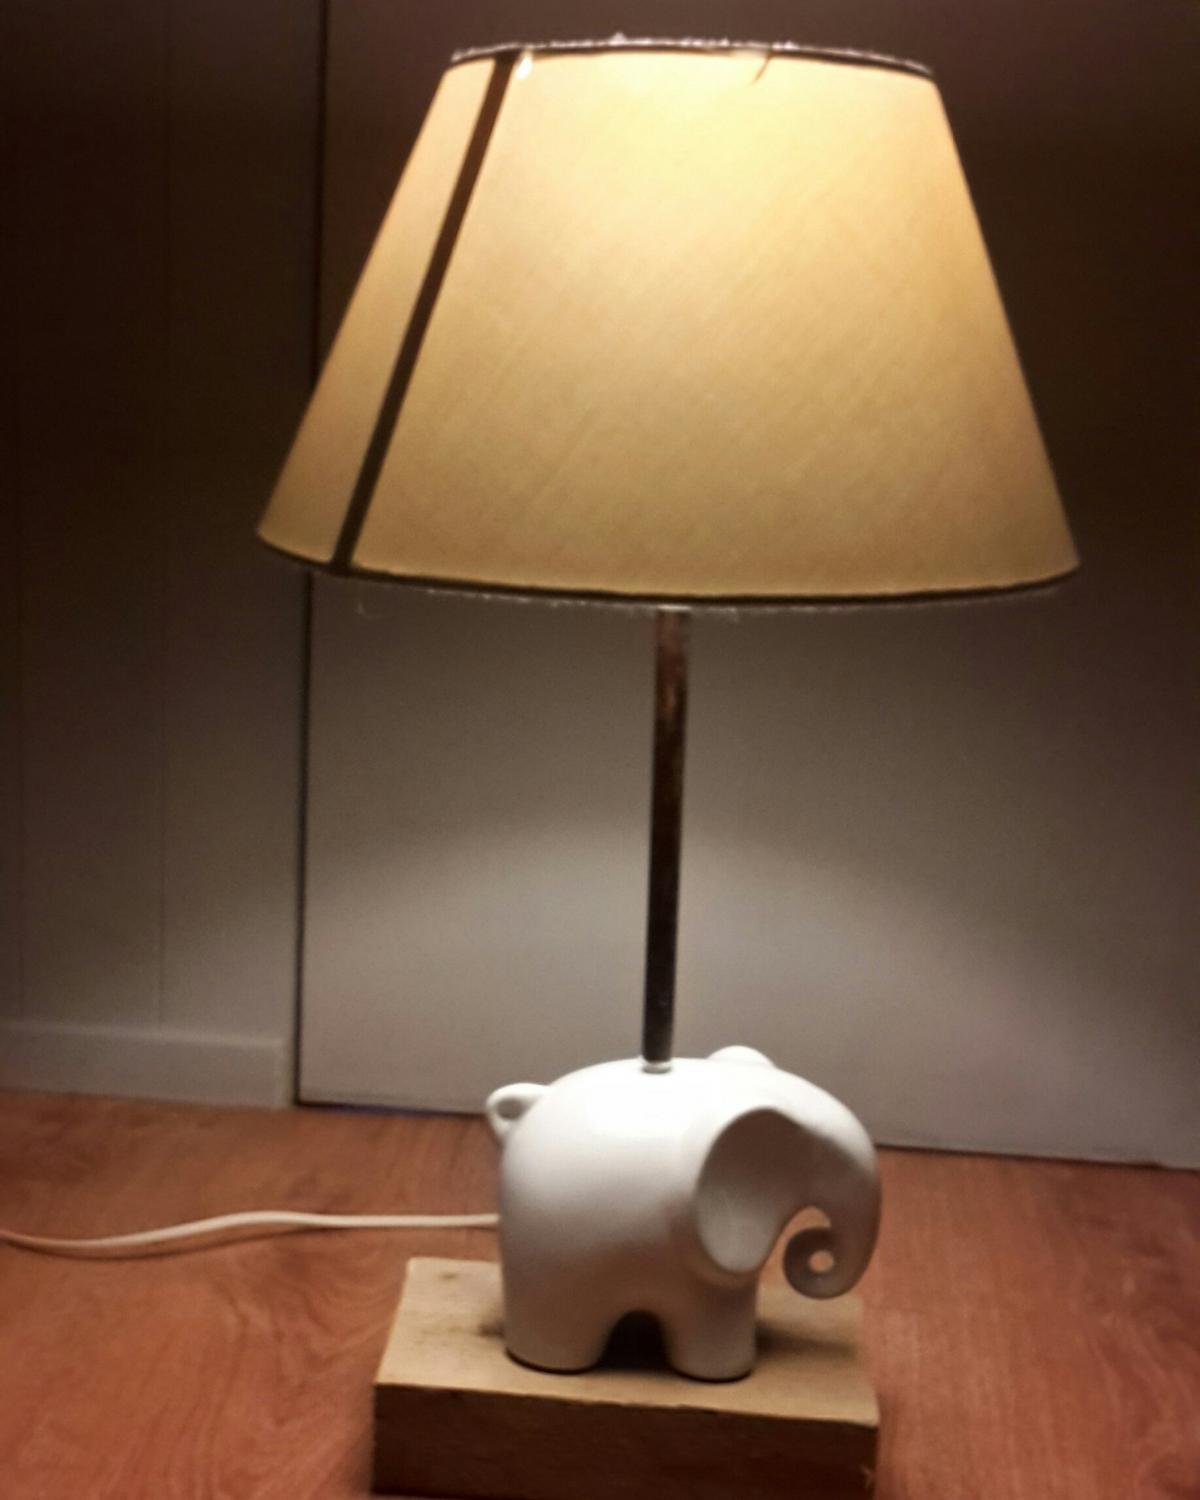 Very unique elephant bedside light. will fit anywere in the home will come with a navy blue shade .. please feel free to ask me anything... also please check out my other homemade light at homemade lighting wirral thank you